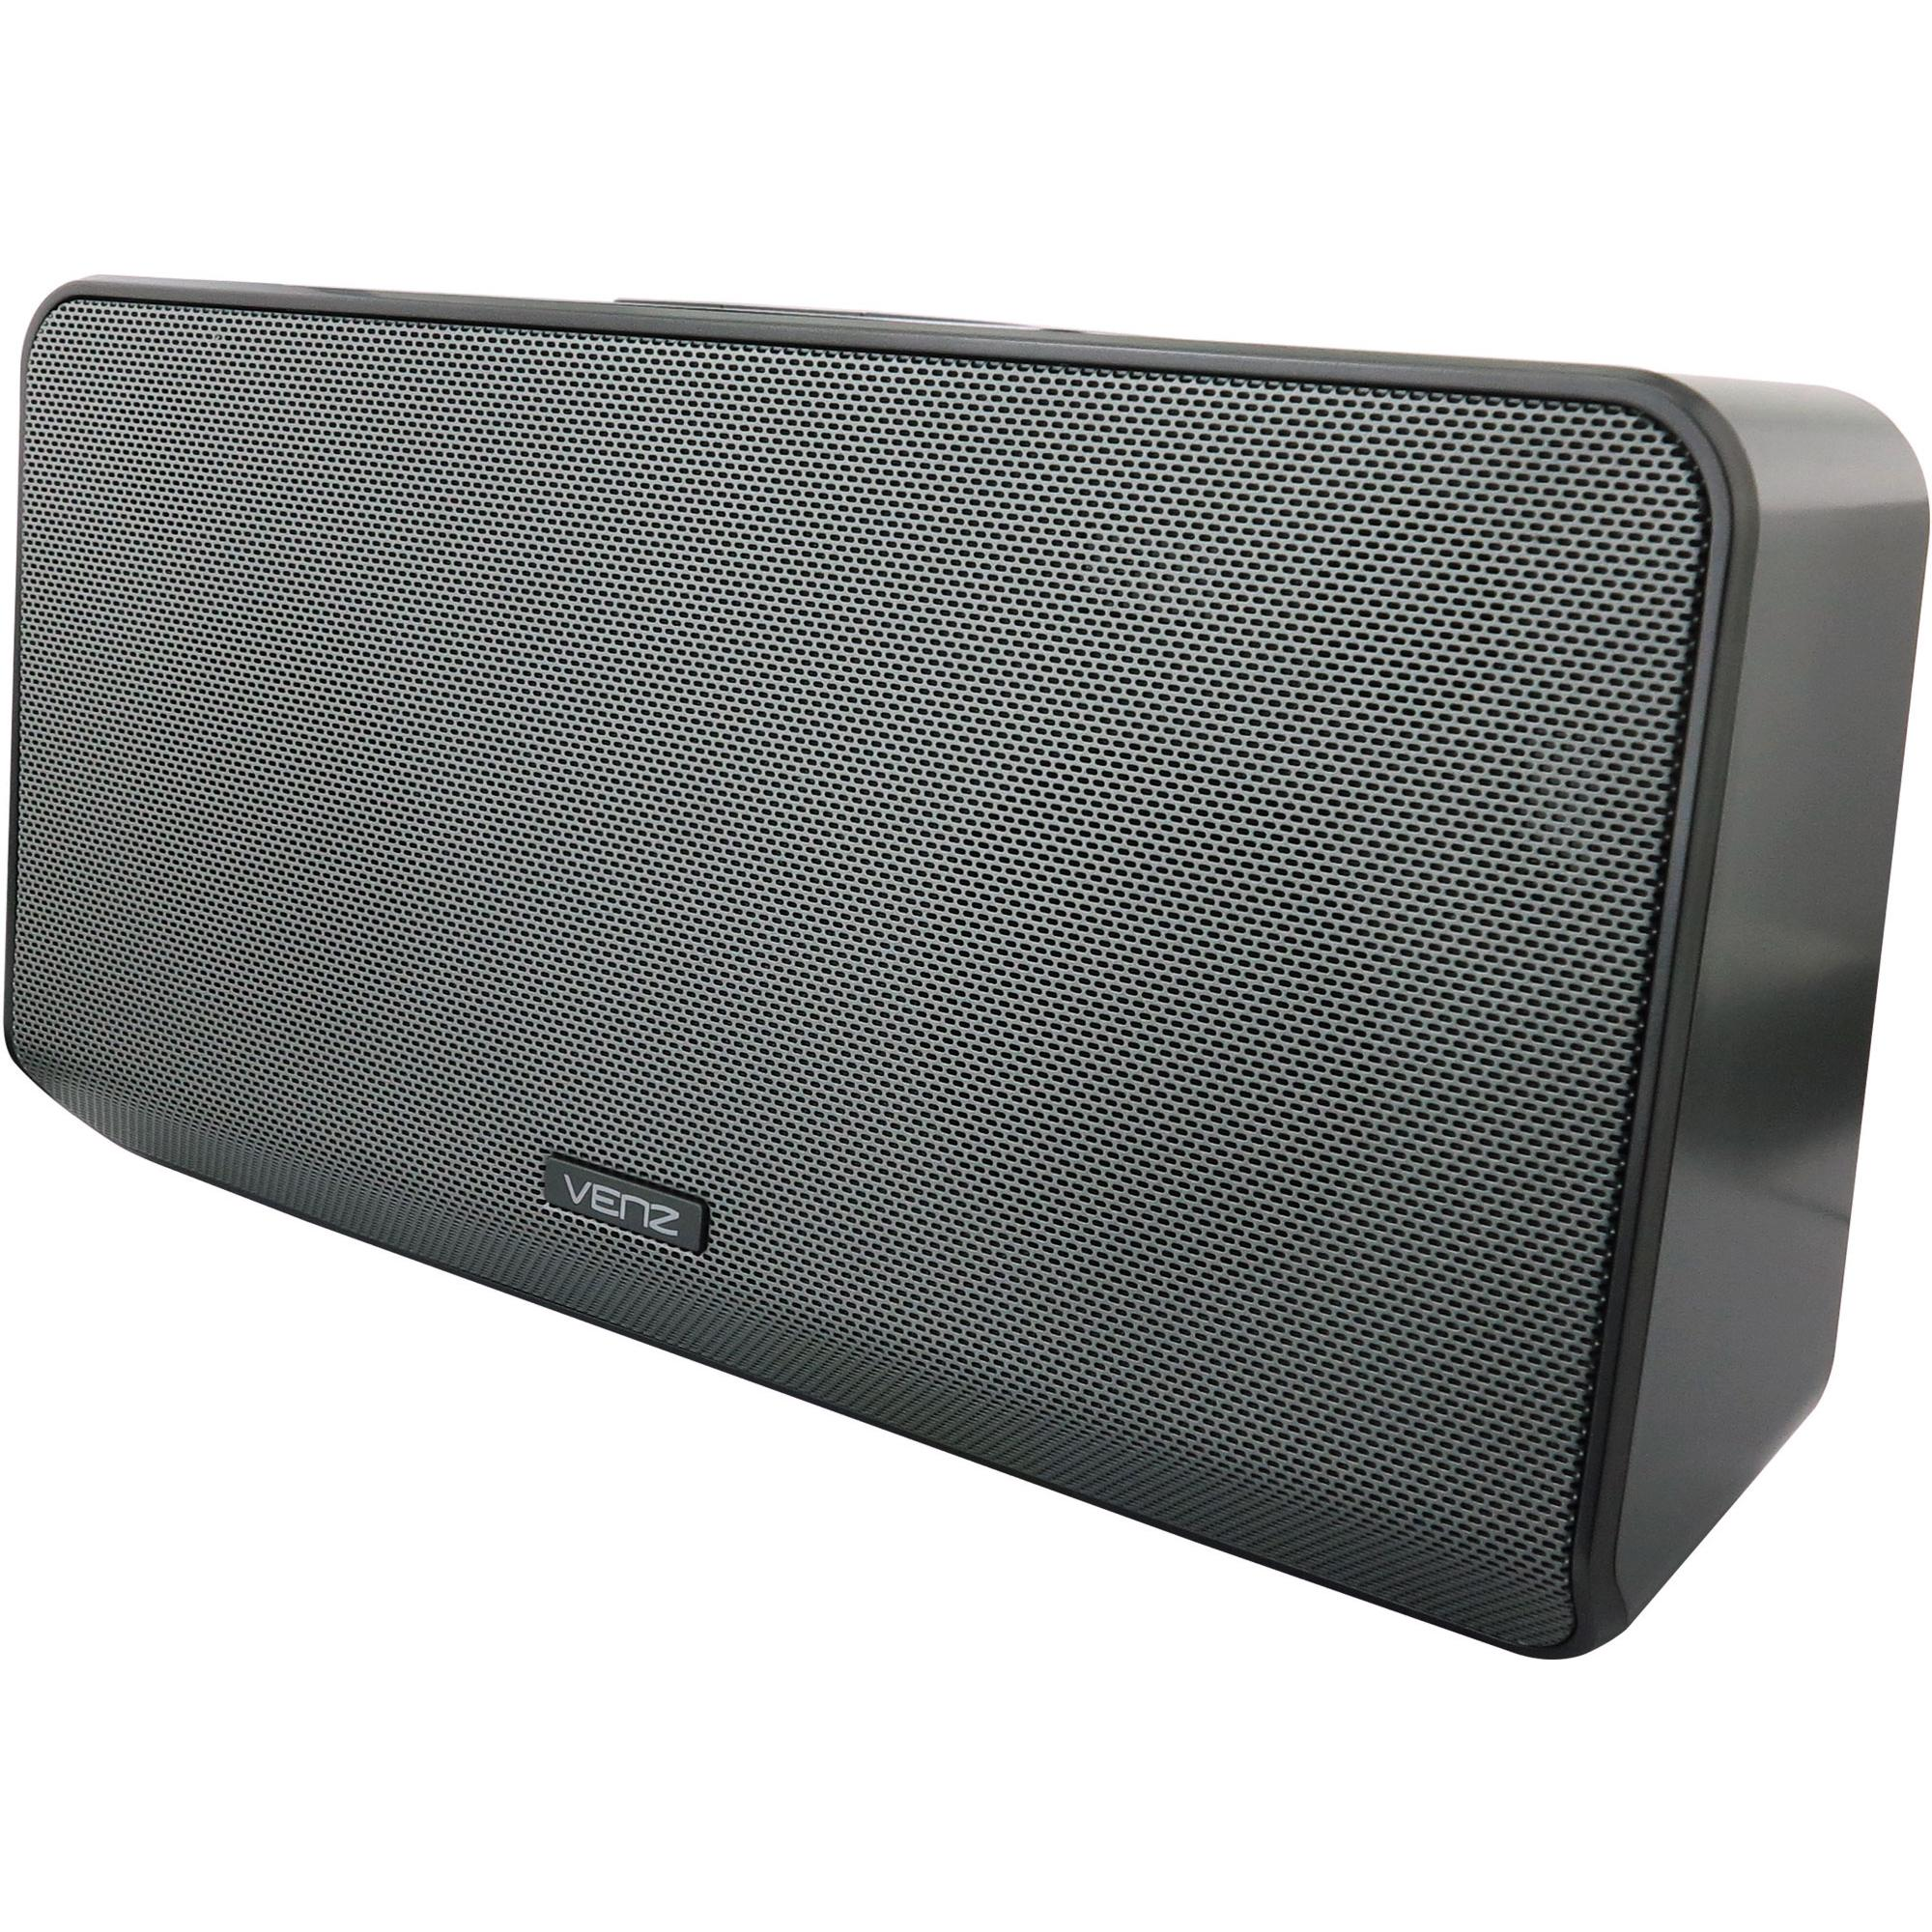 Speaker 25Wx2 WiFi Lan Usb con DLNA e AirPlay A501